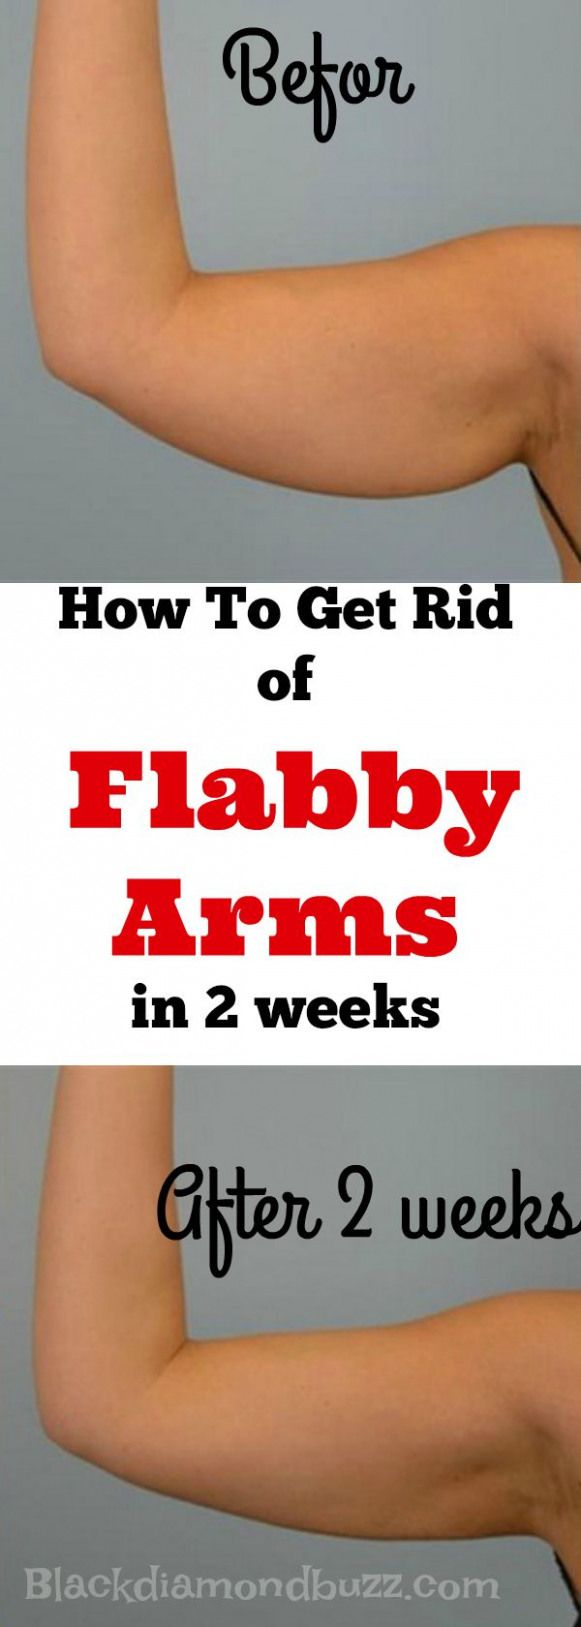 How To Get Rid Of Flabby Upper Arms Fast